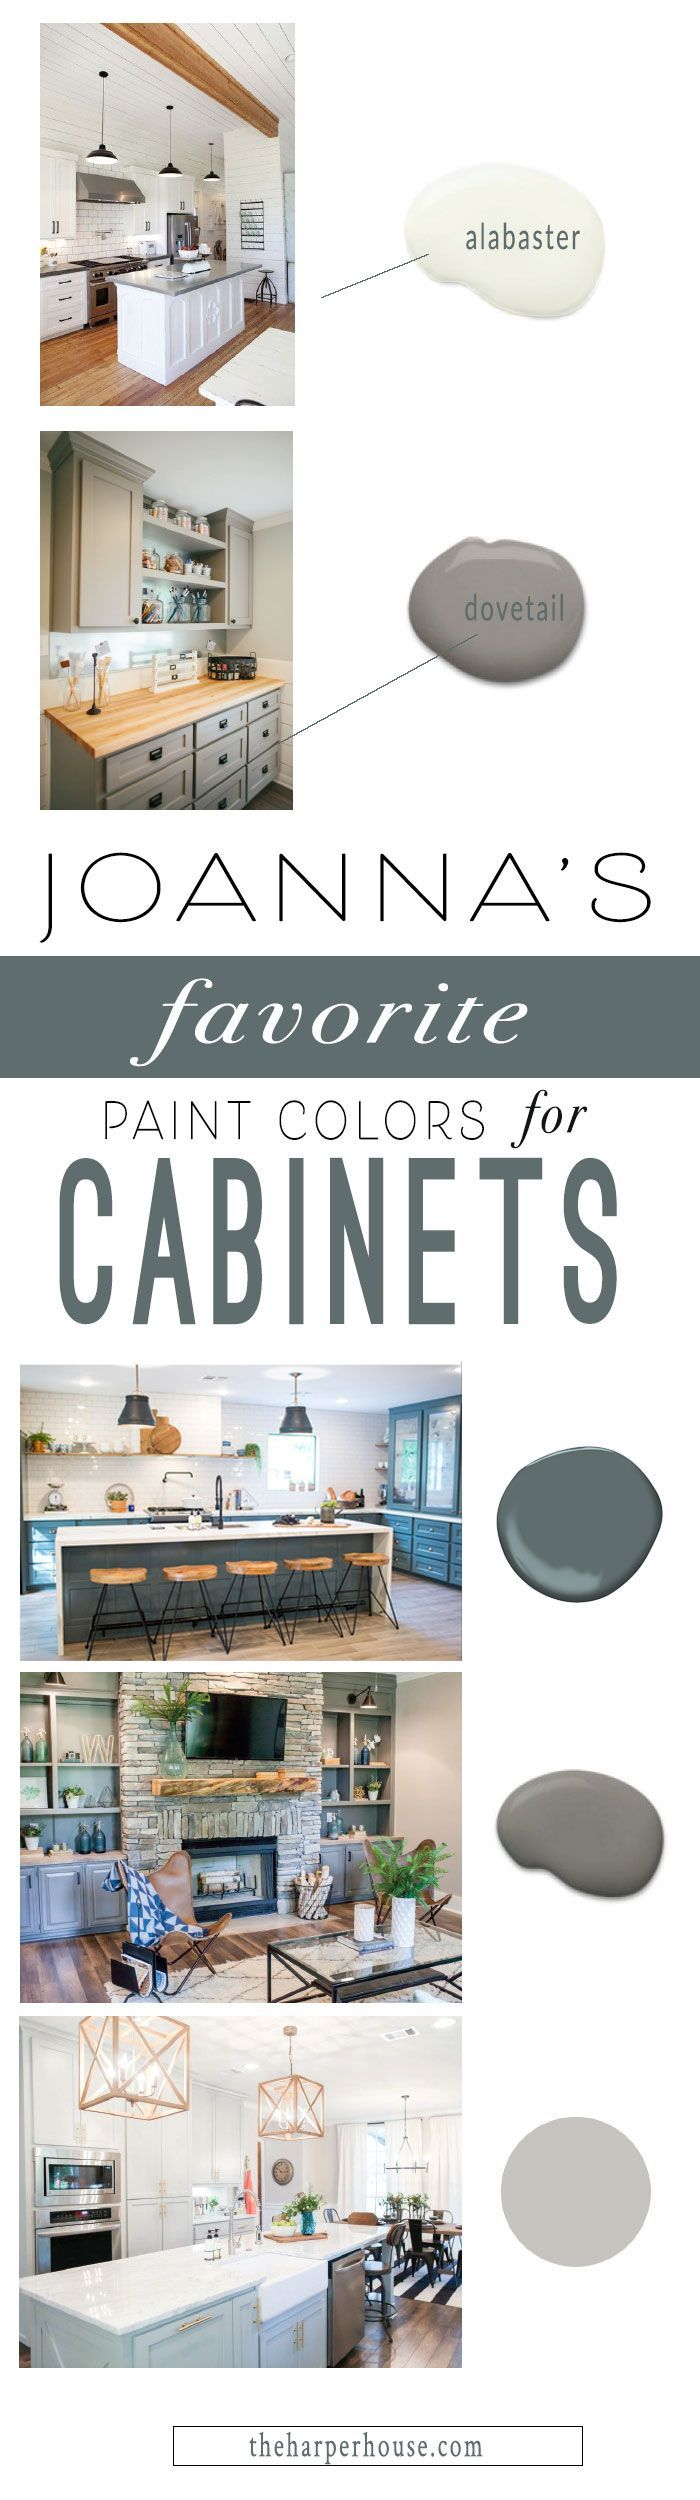 Fixer Upper style favorite paint colors for cabinets.  sc 1 st  Pinterest & Best Paint for Cabinets: Kitchen Cabinet Paint Colors | Farmhouse ...